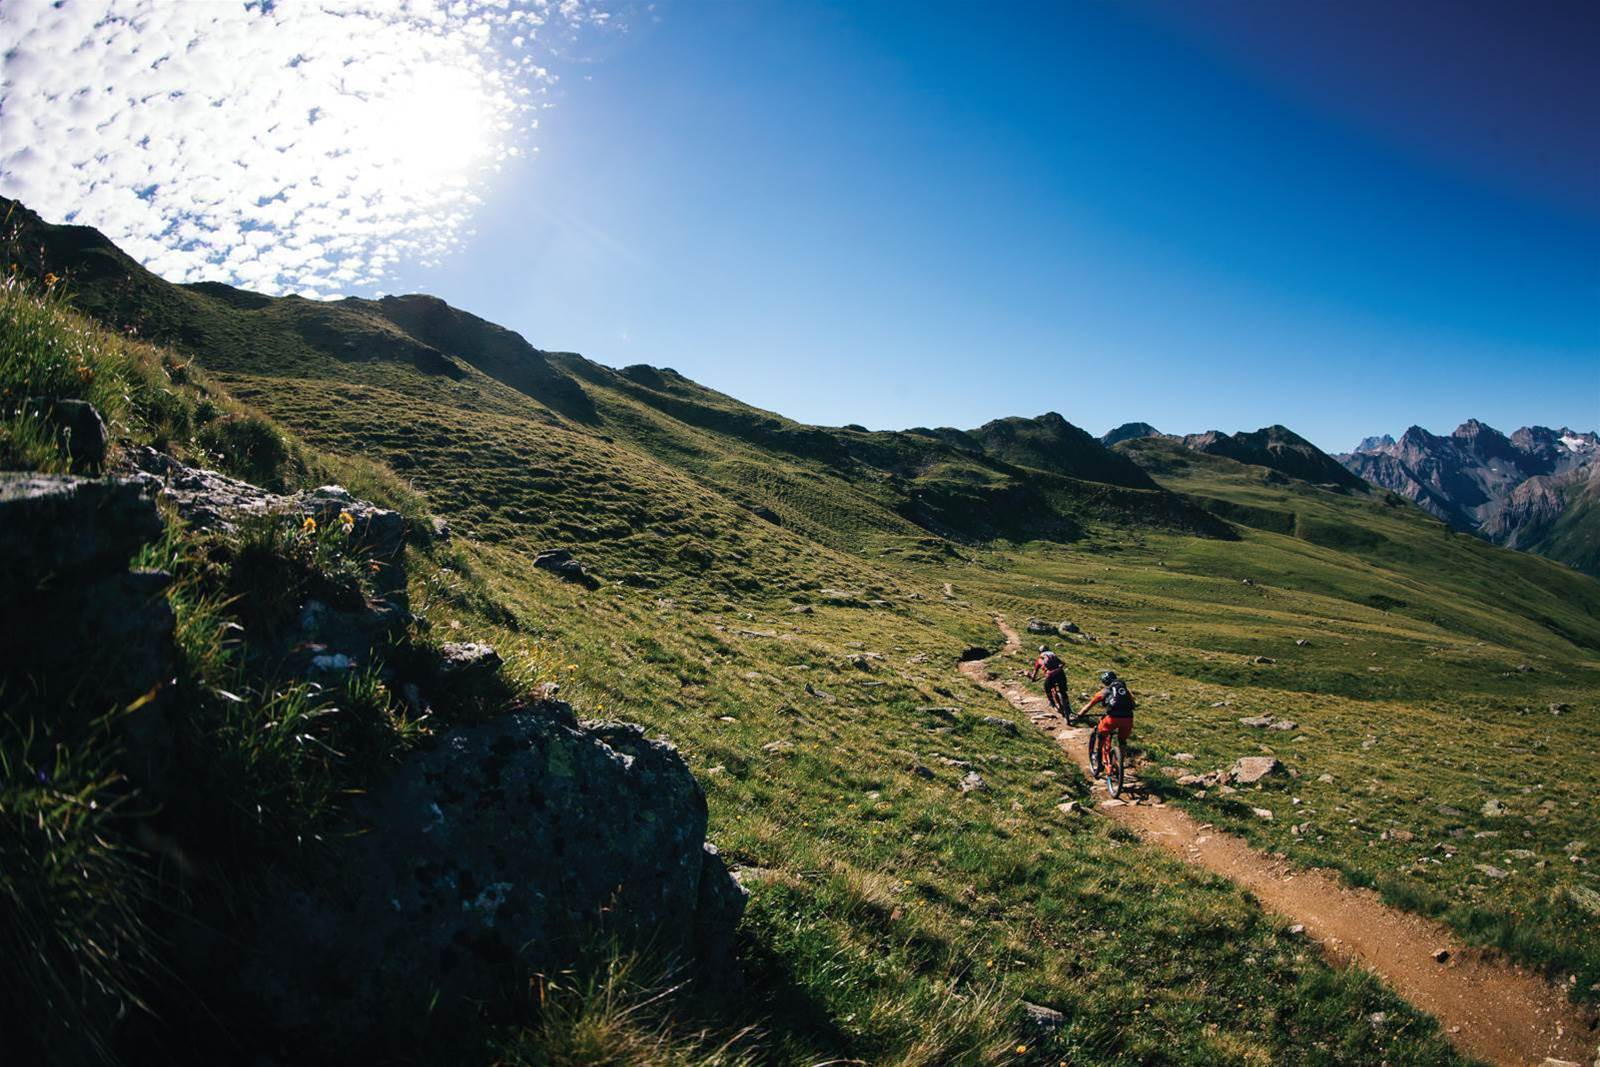 Endless Trails - Steffi Marth and Richie Schley on a Swiss adventure